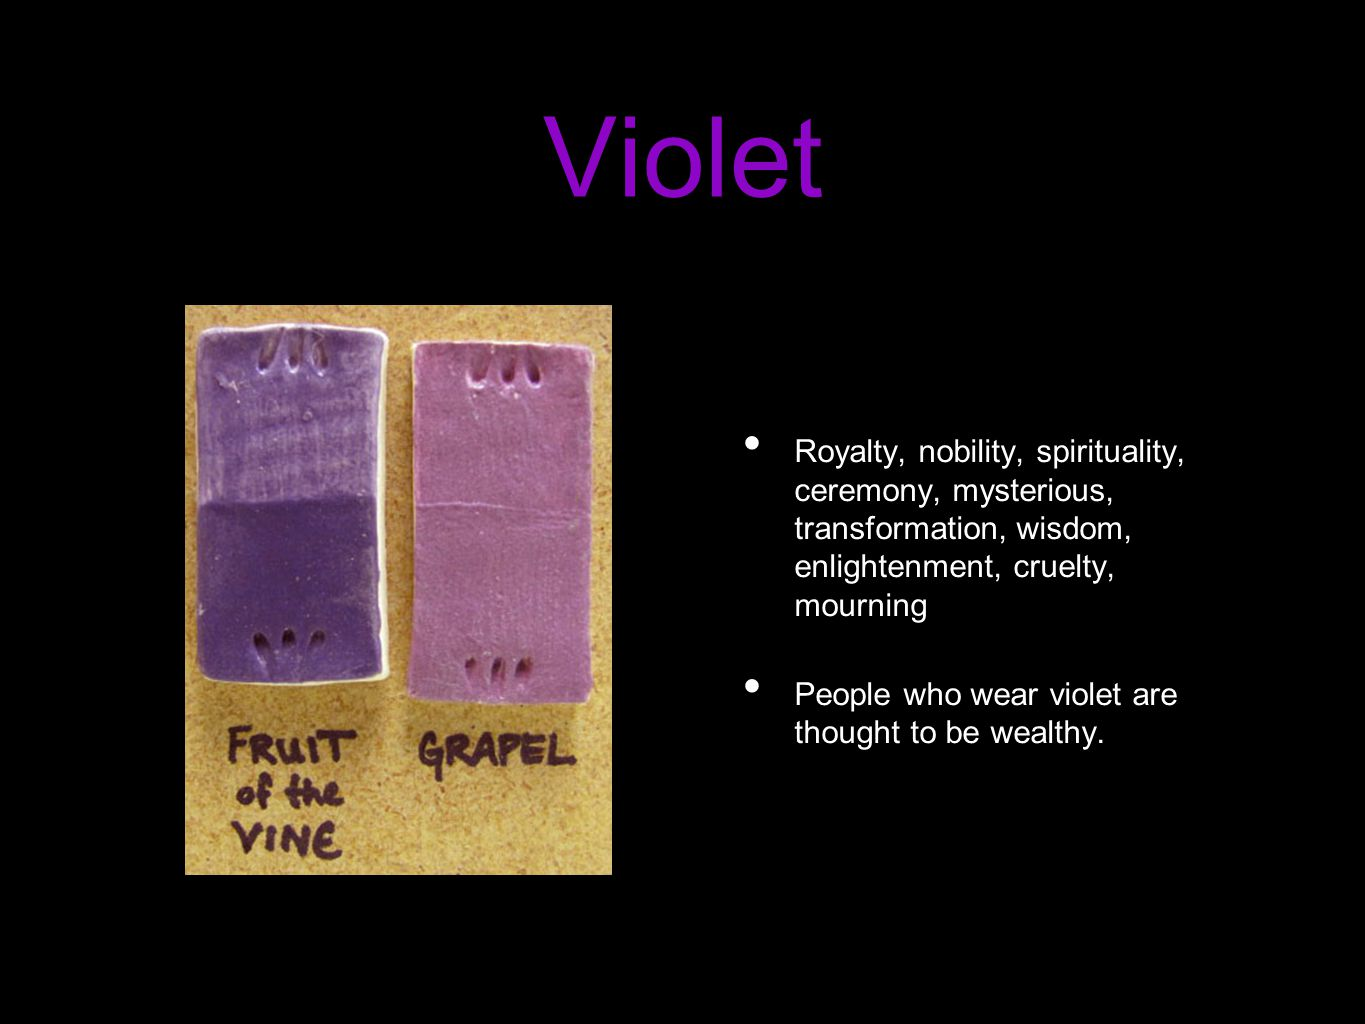 Violet Royalty, nobility, spirituality, ceremony, mysterious, transformation, wisdom, enlightenment, cruelty, mourning People who wear violet are thought to be wealthy.